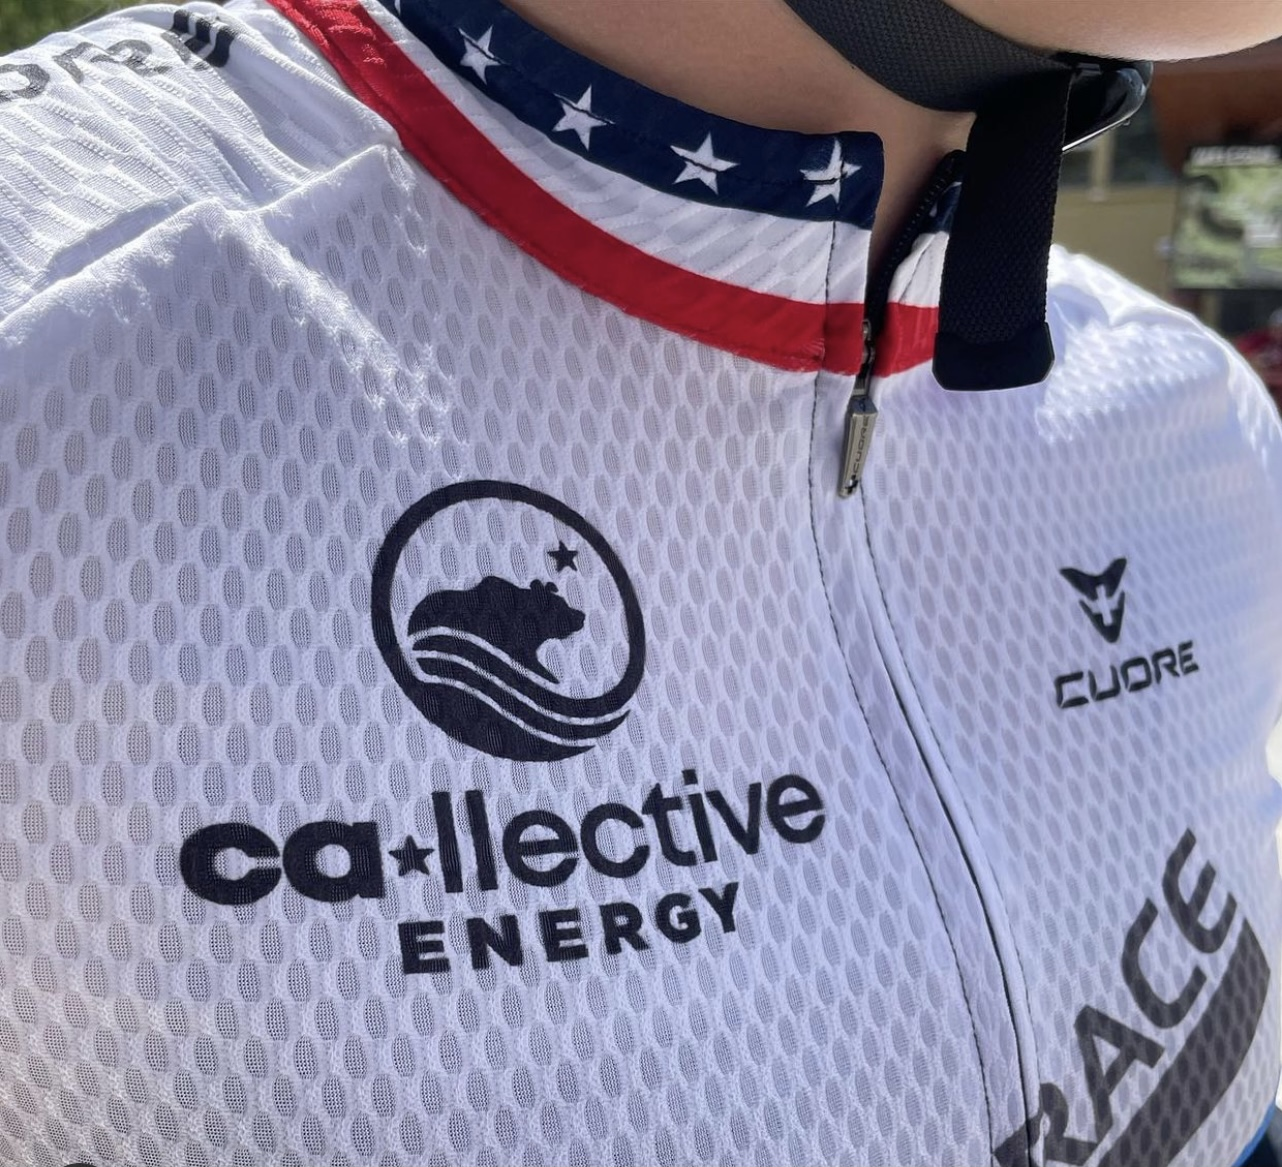 Callective Energy Pedals Waite Endurance to the Finish Line with No Carbon Footprint